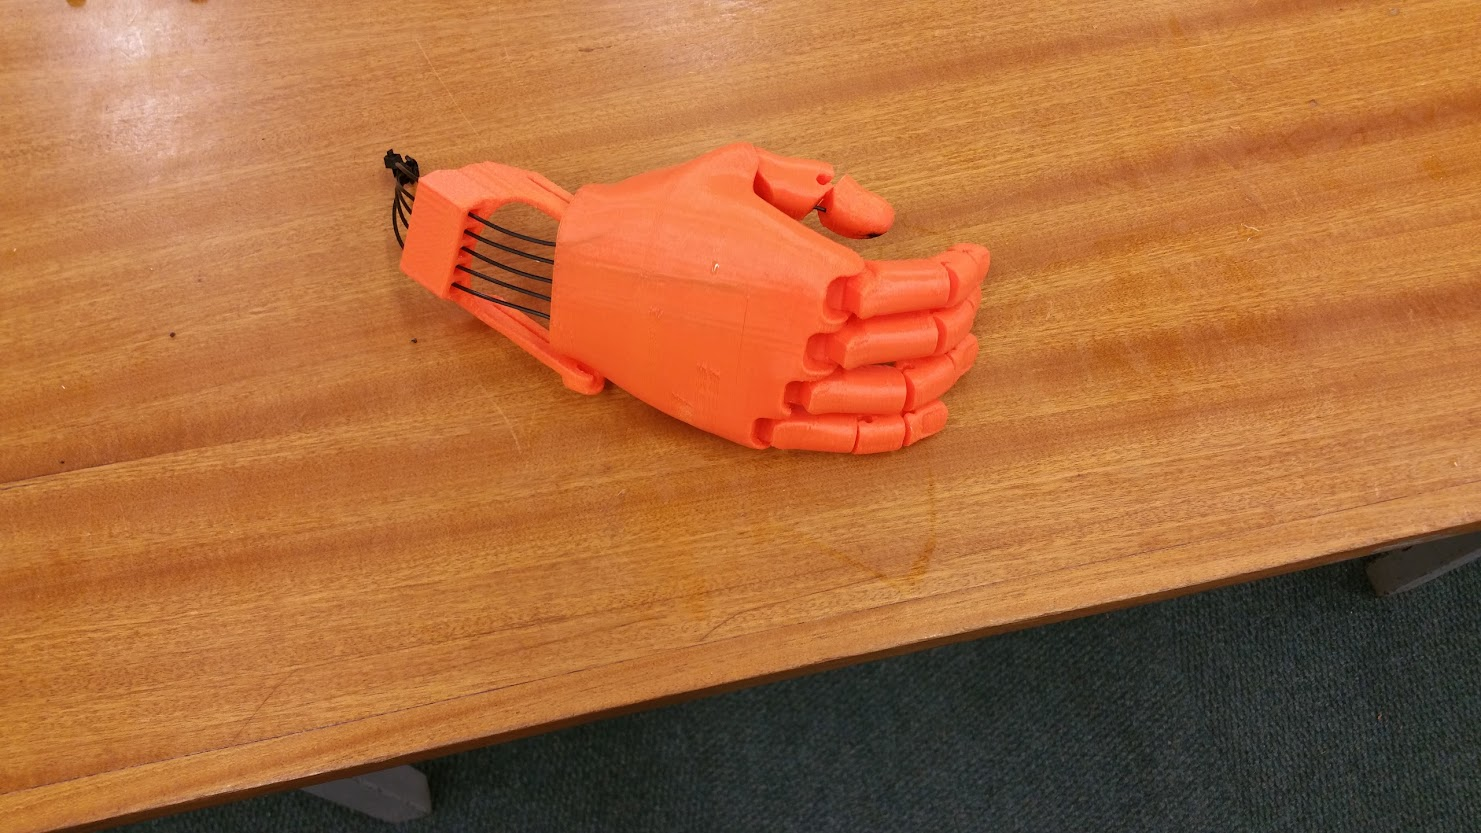 A prosthetic hand, made by Morgan